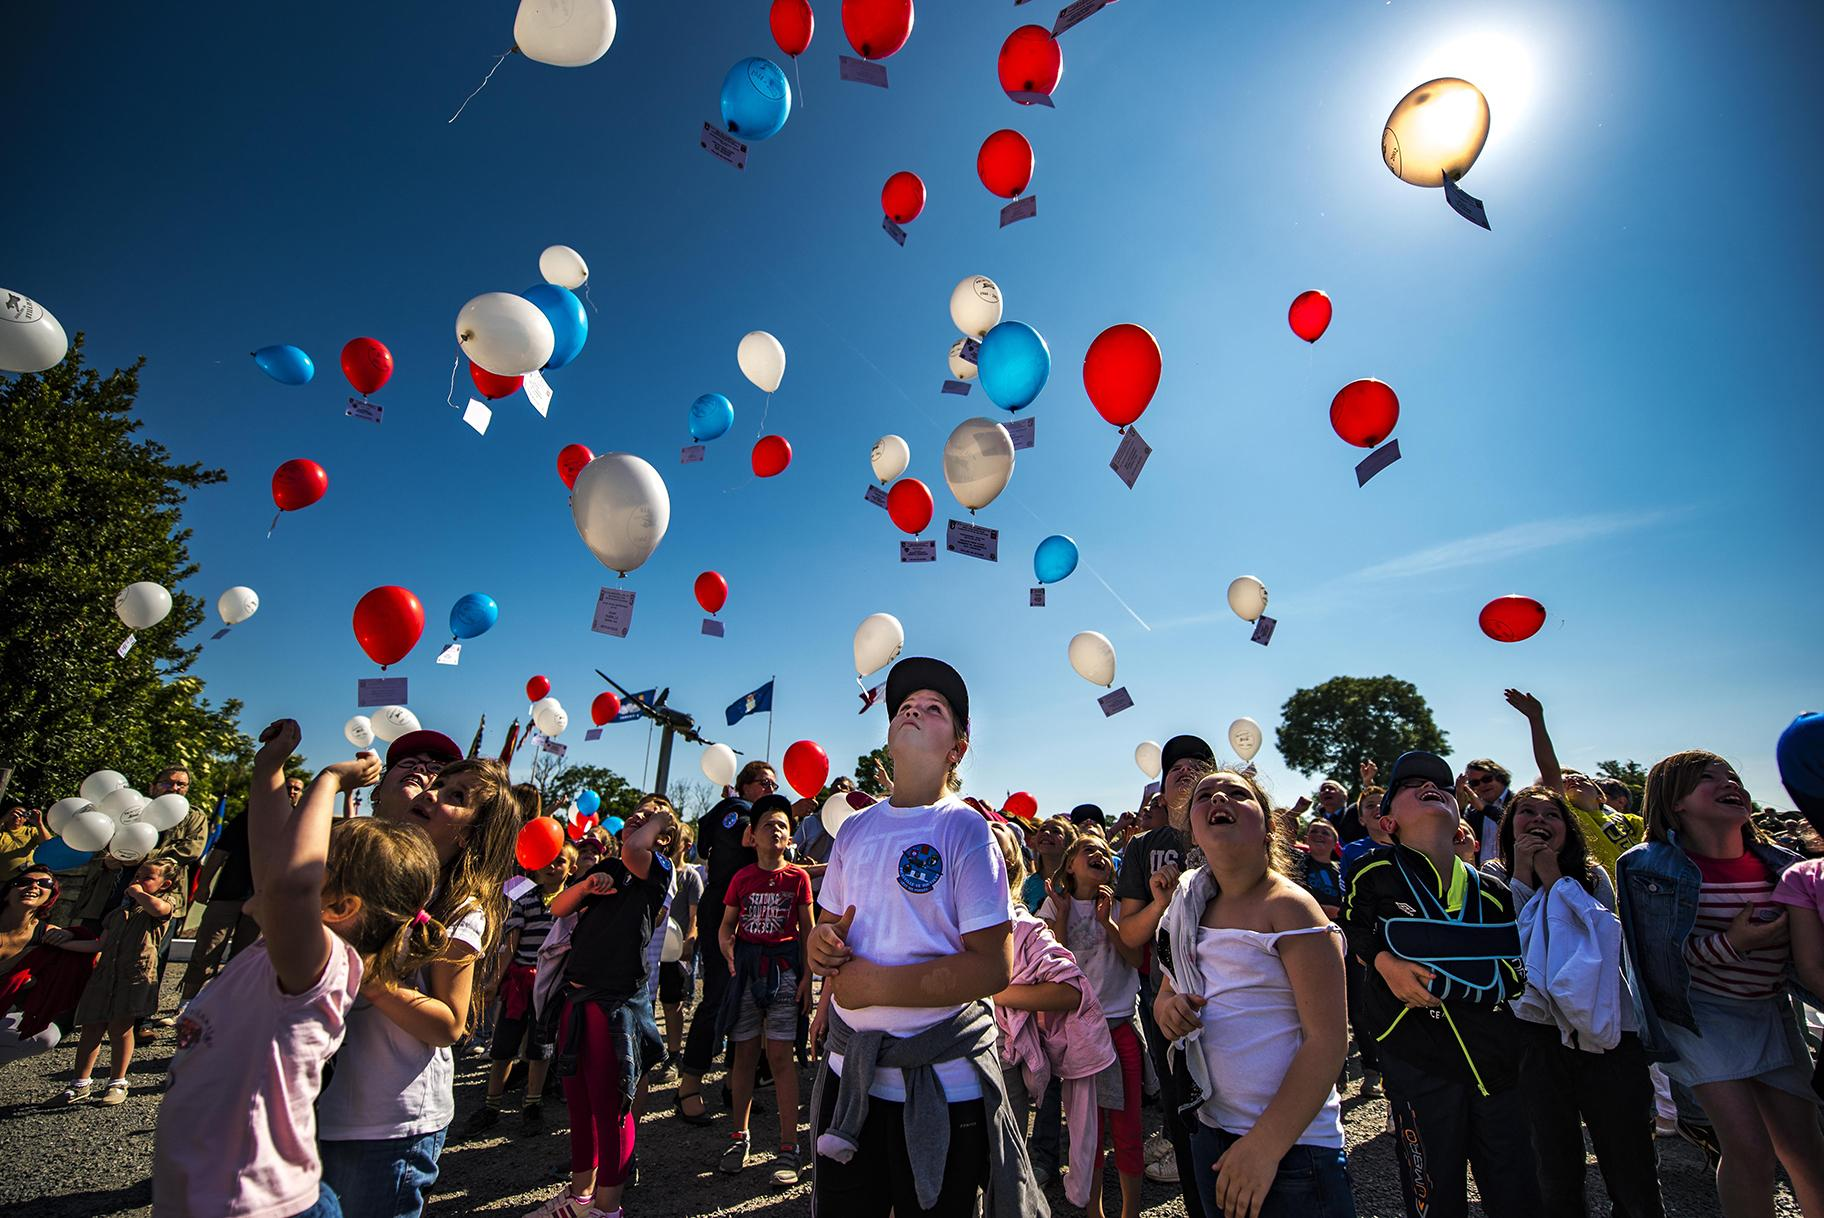 French children release balloons into the air during a D-Day remembrance ceremony at the United States Army Air Forces Transport Memorial in Picauville, France, June 1, 2017. (U.S. Air Force photo / Senior Airman Devin Boyer)